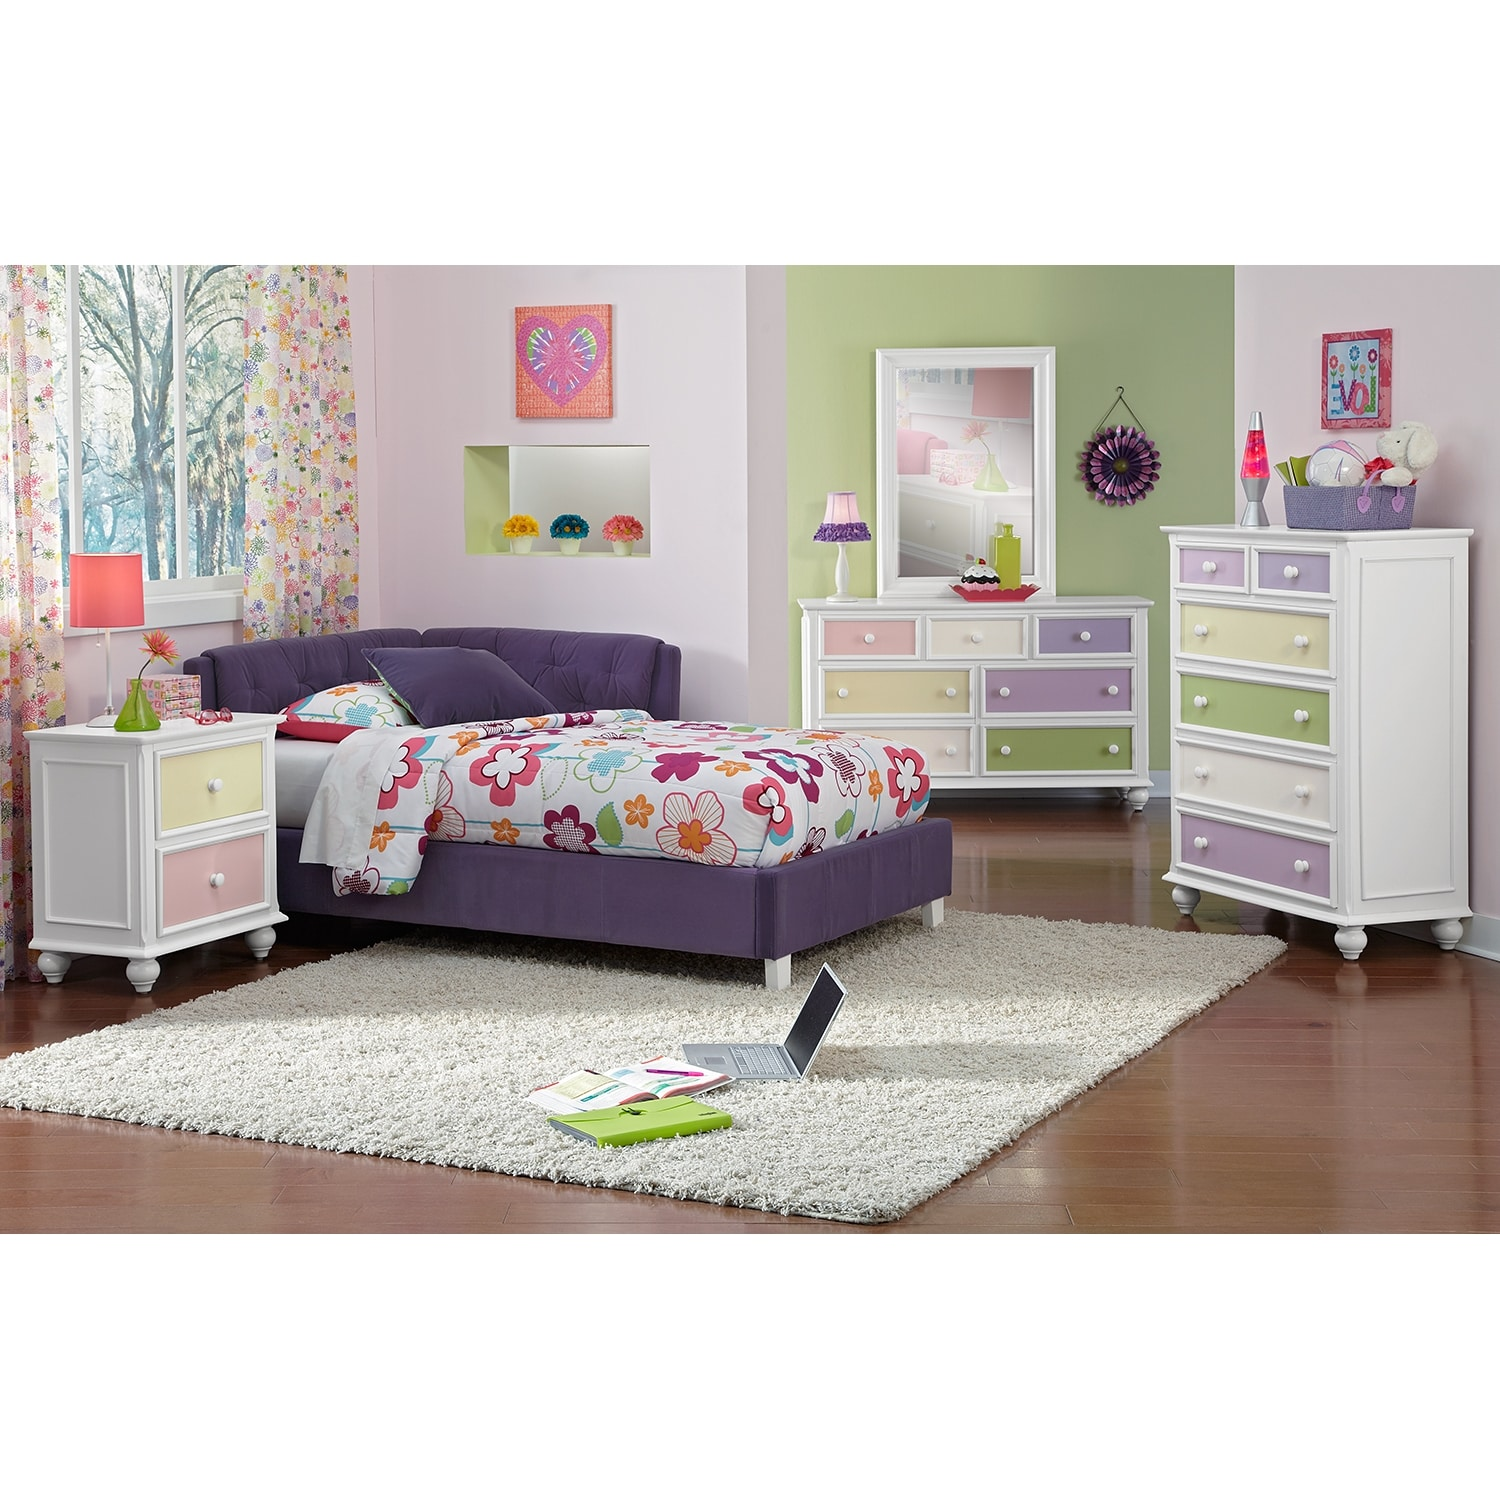 Jordan Full Corner Bed Purple Value City Furniture And